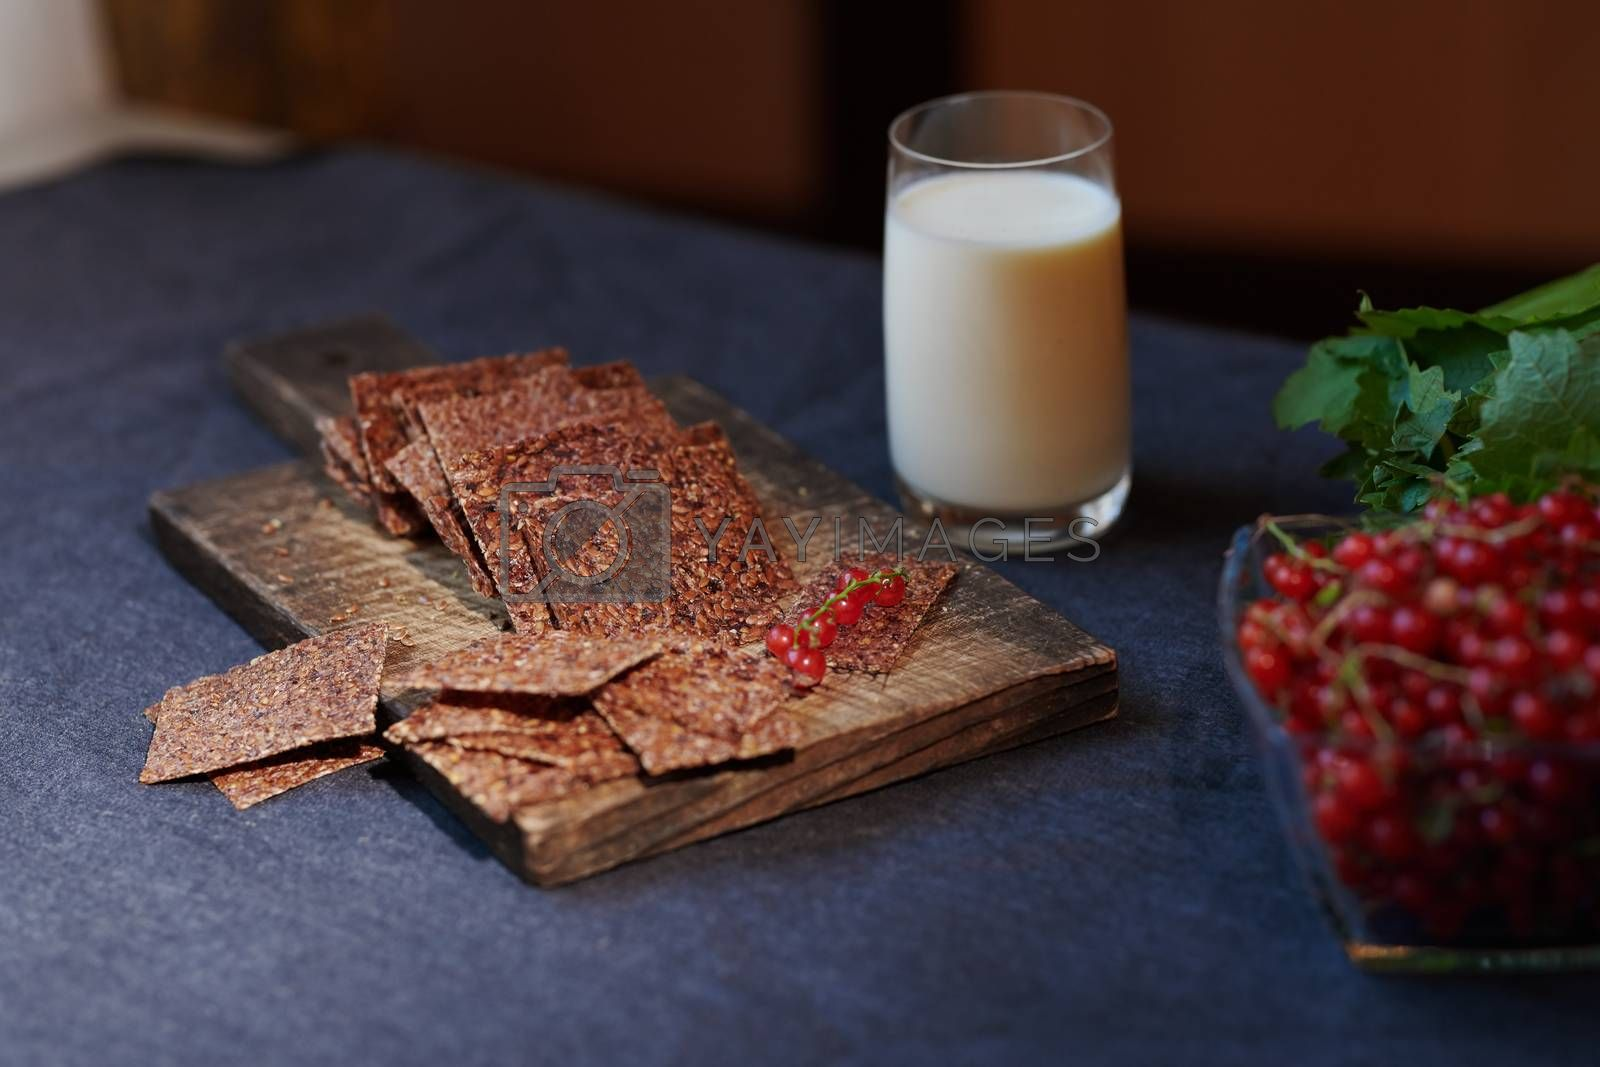 Vegan flaxseed bread with berries next to the glass with coconut milk